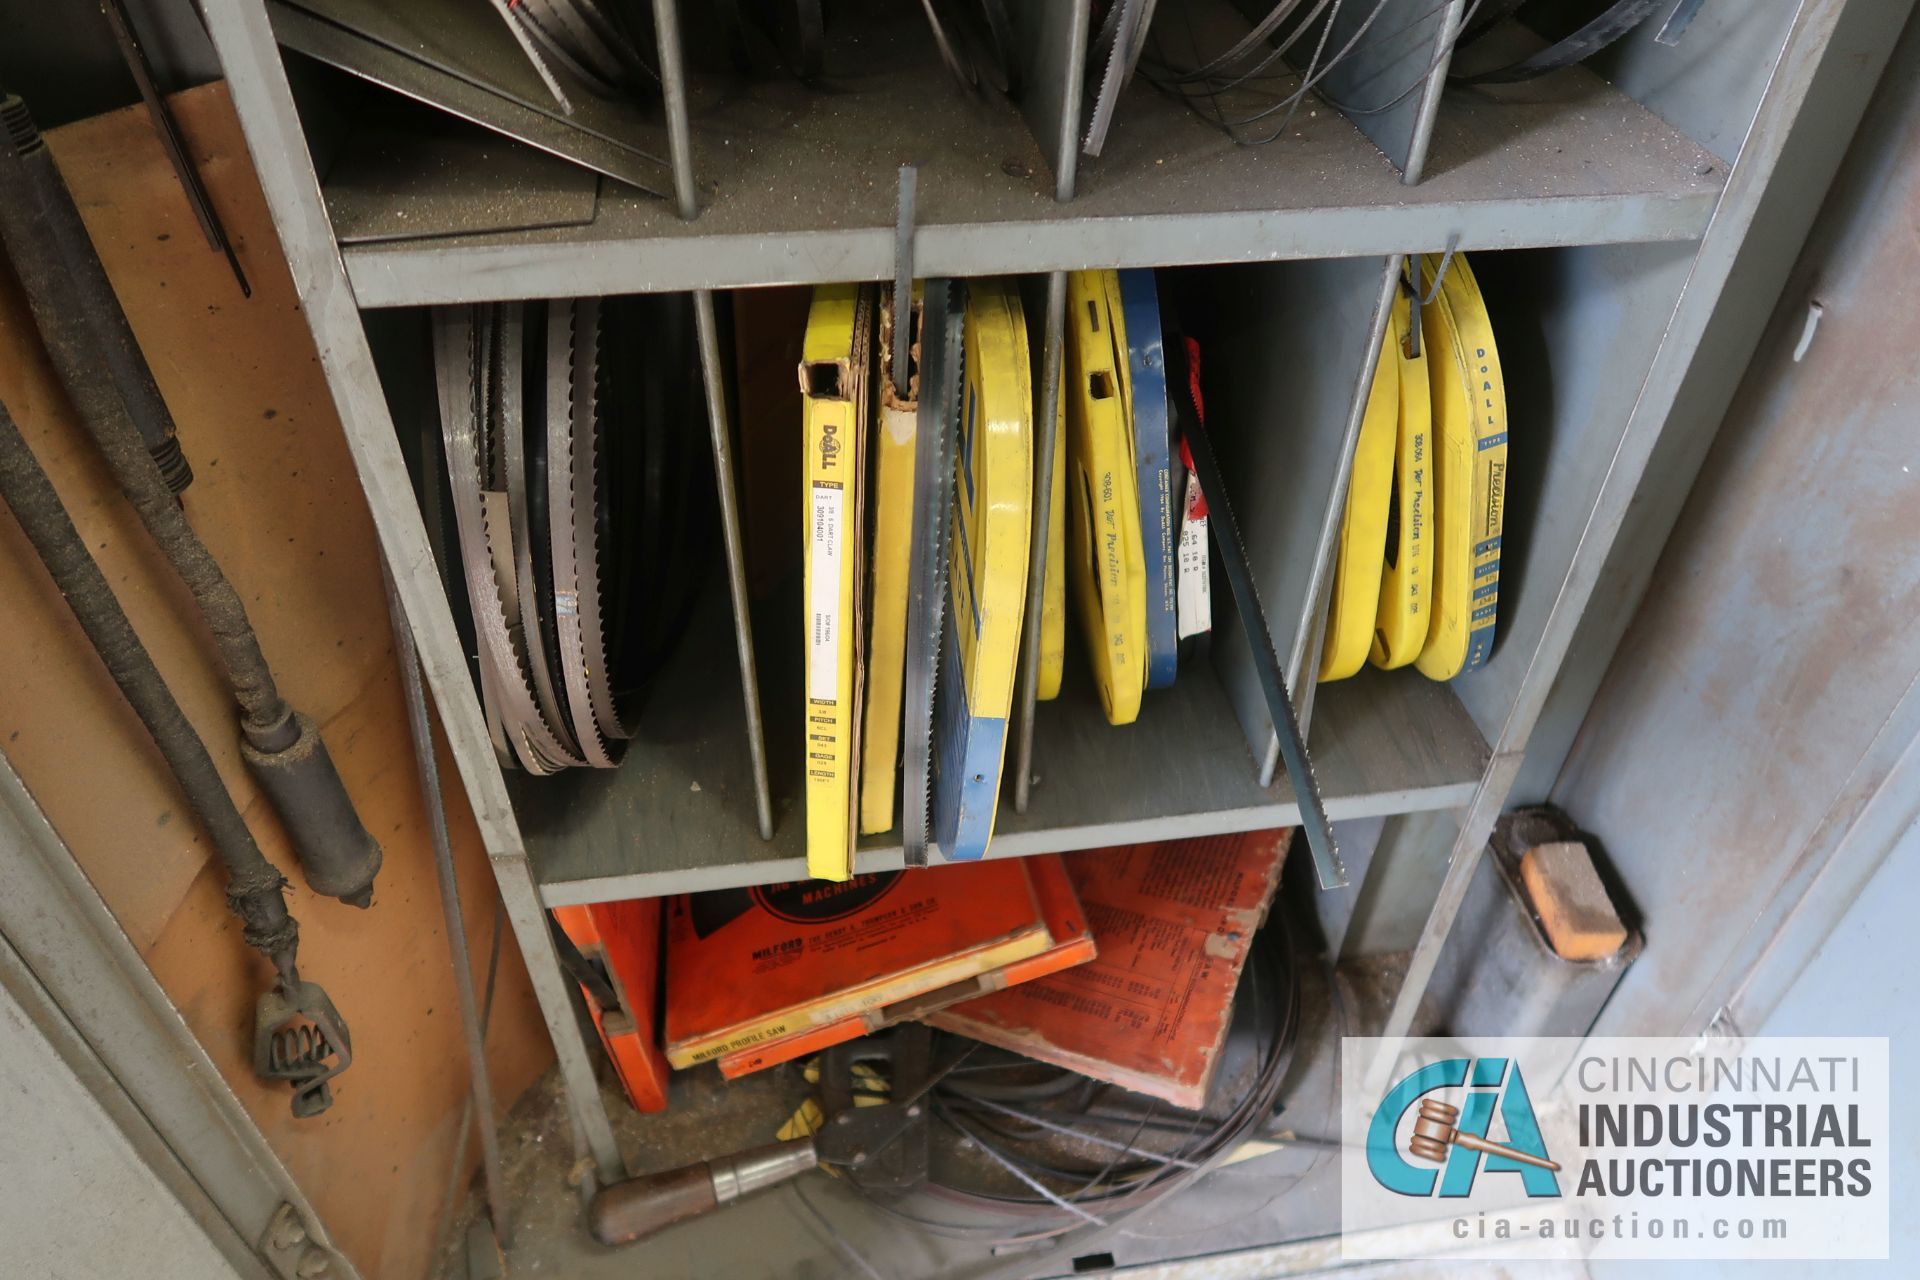 (LOT) MISCELLANEOUS SIZE BAND SAW BLADES WITH STORAGE CABINET - Image 5 of 6